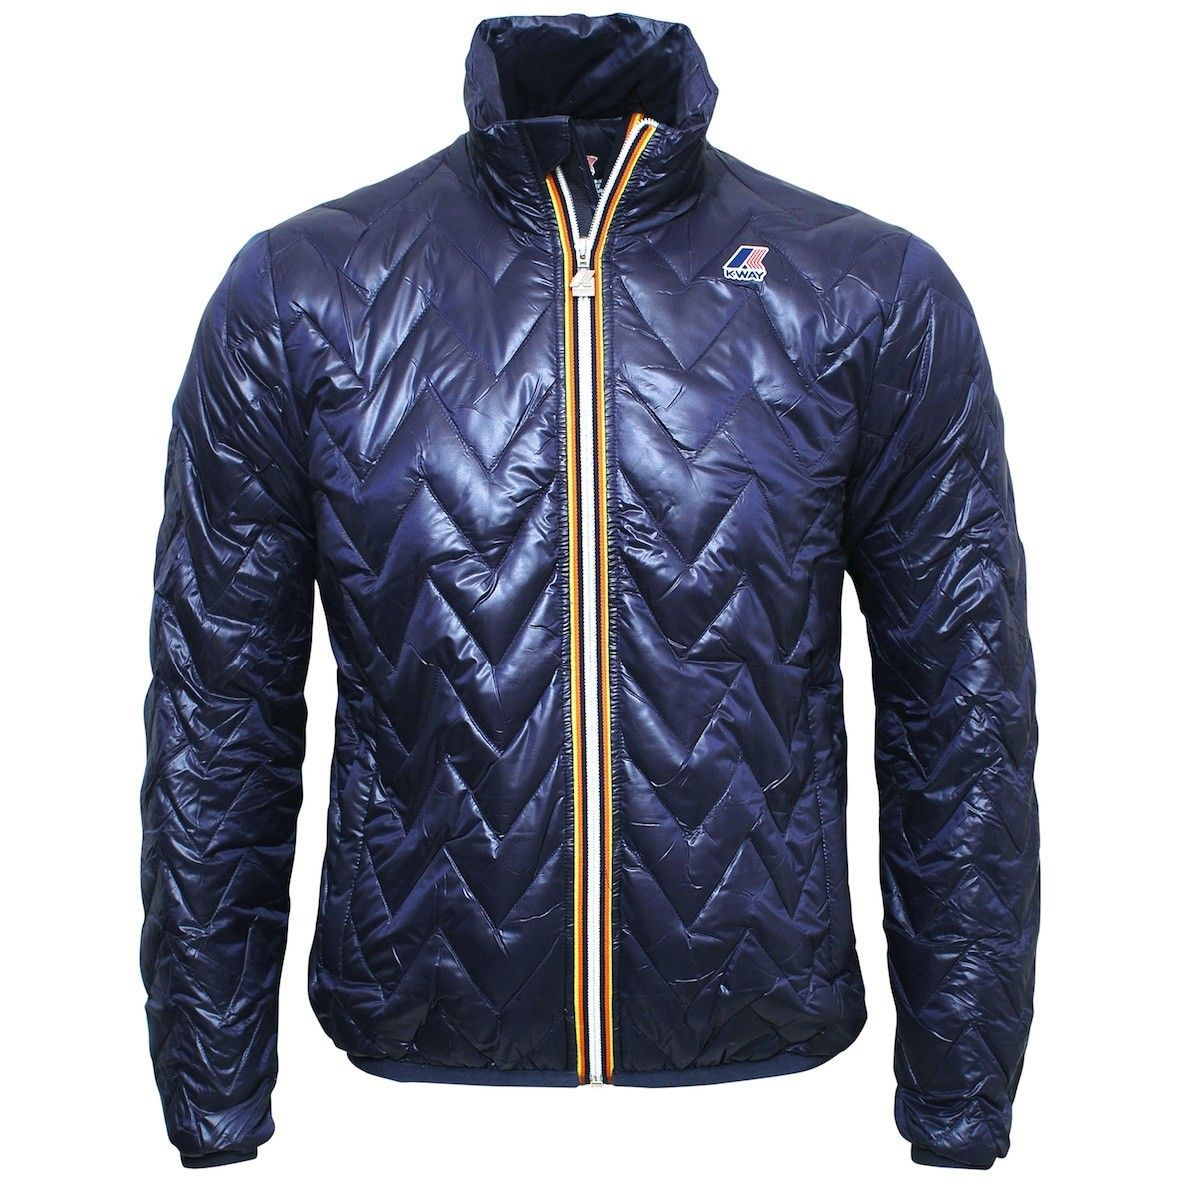 MODELE HOMME VALENTINE THERMO CLAIR A 295 EUROS